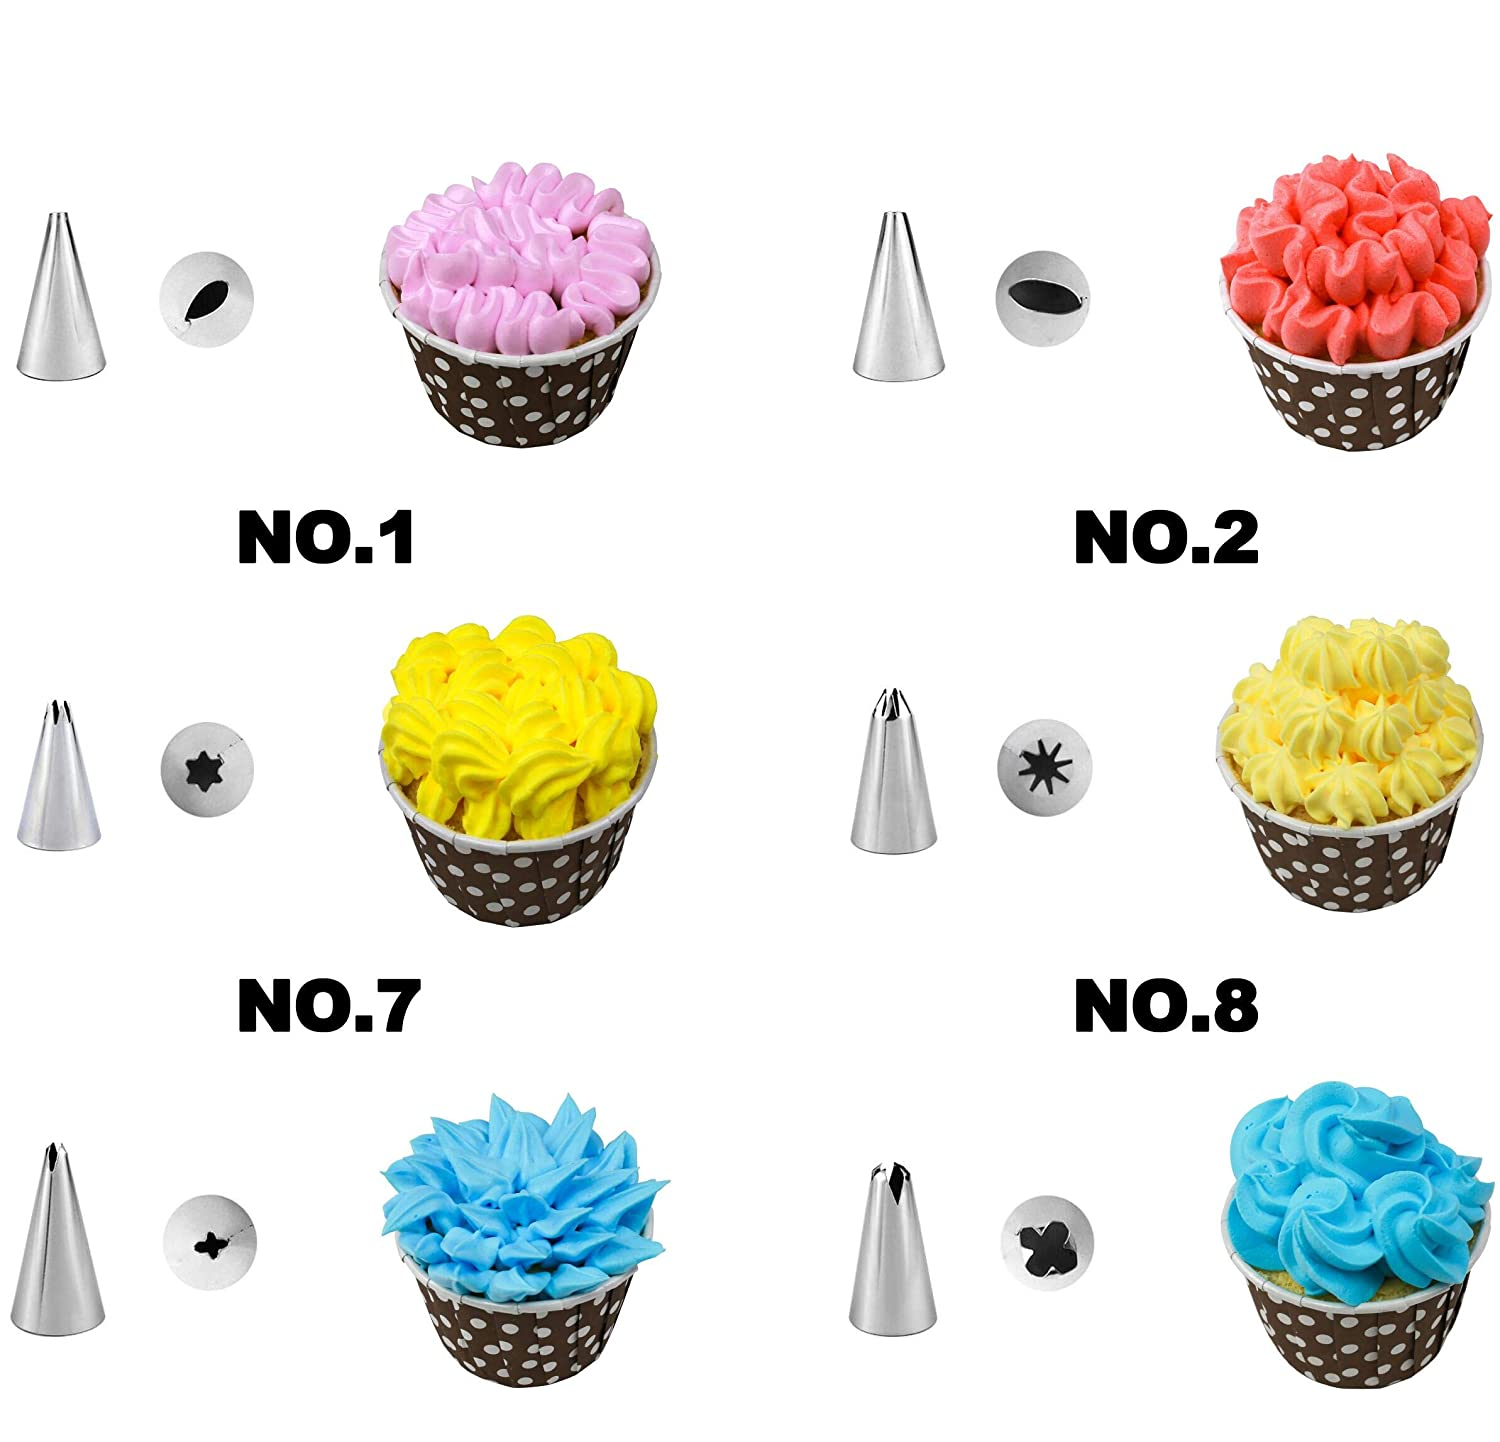 Frosting Pastry Bay Icing Spatula and Smoother Piping Bags Cake Decorating Supplies Kit With Cake Turntable Stand- Extended 127pcs Baking Supplies Baking Set Includes: Rotating Turntable Stand